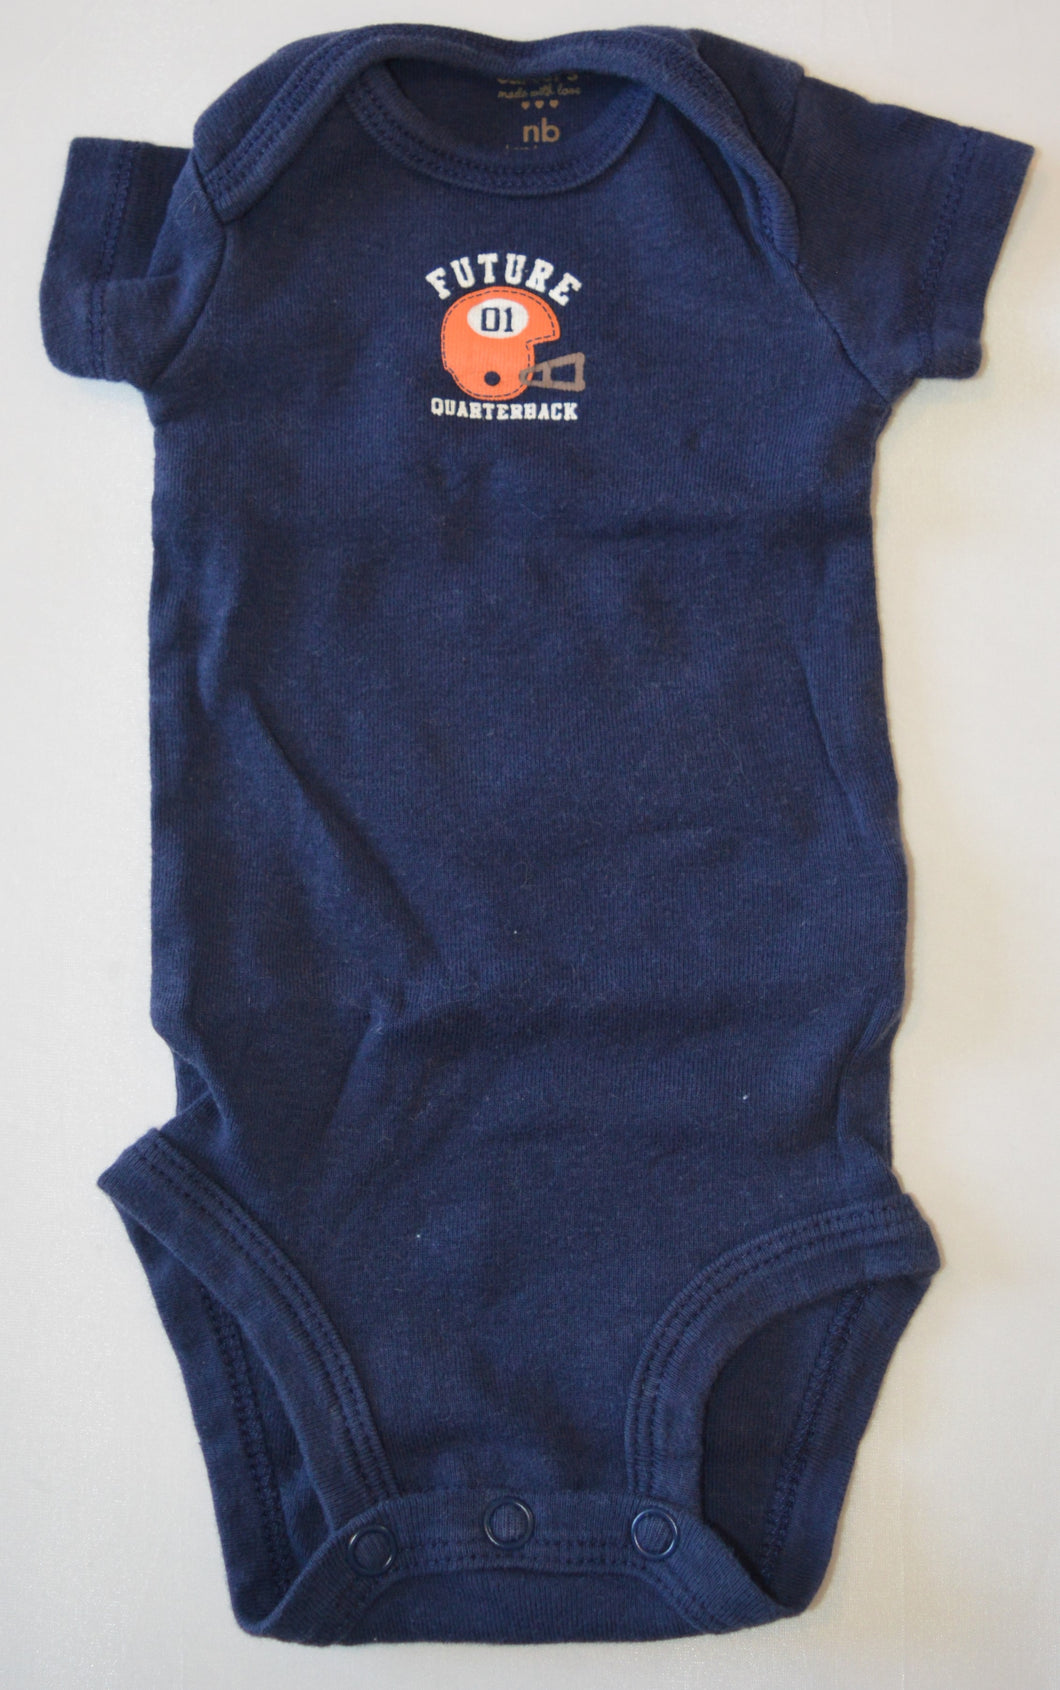 Carter's Navy Future Quarterback Onesie